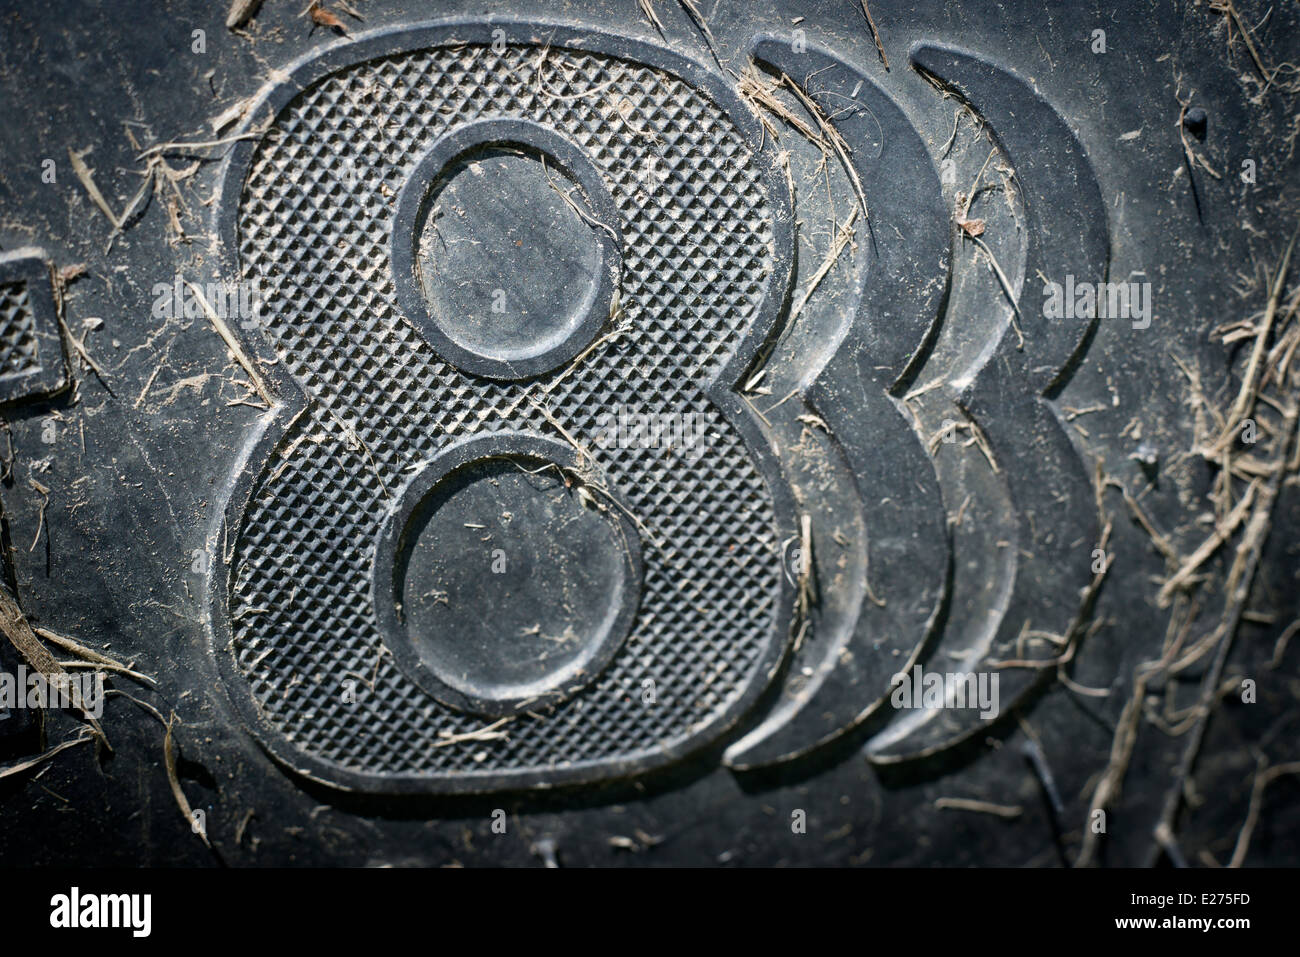 888 lucky symbol on a tractor tyre. - Stock Image